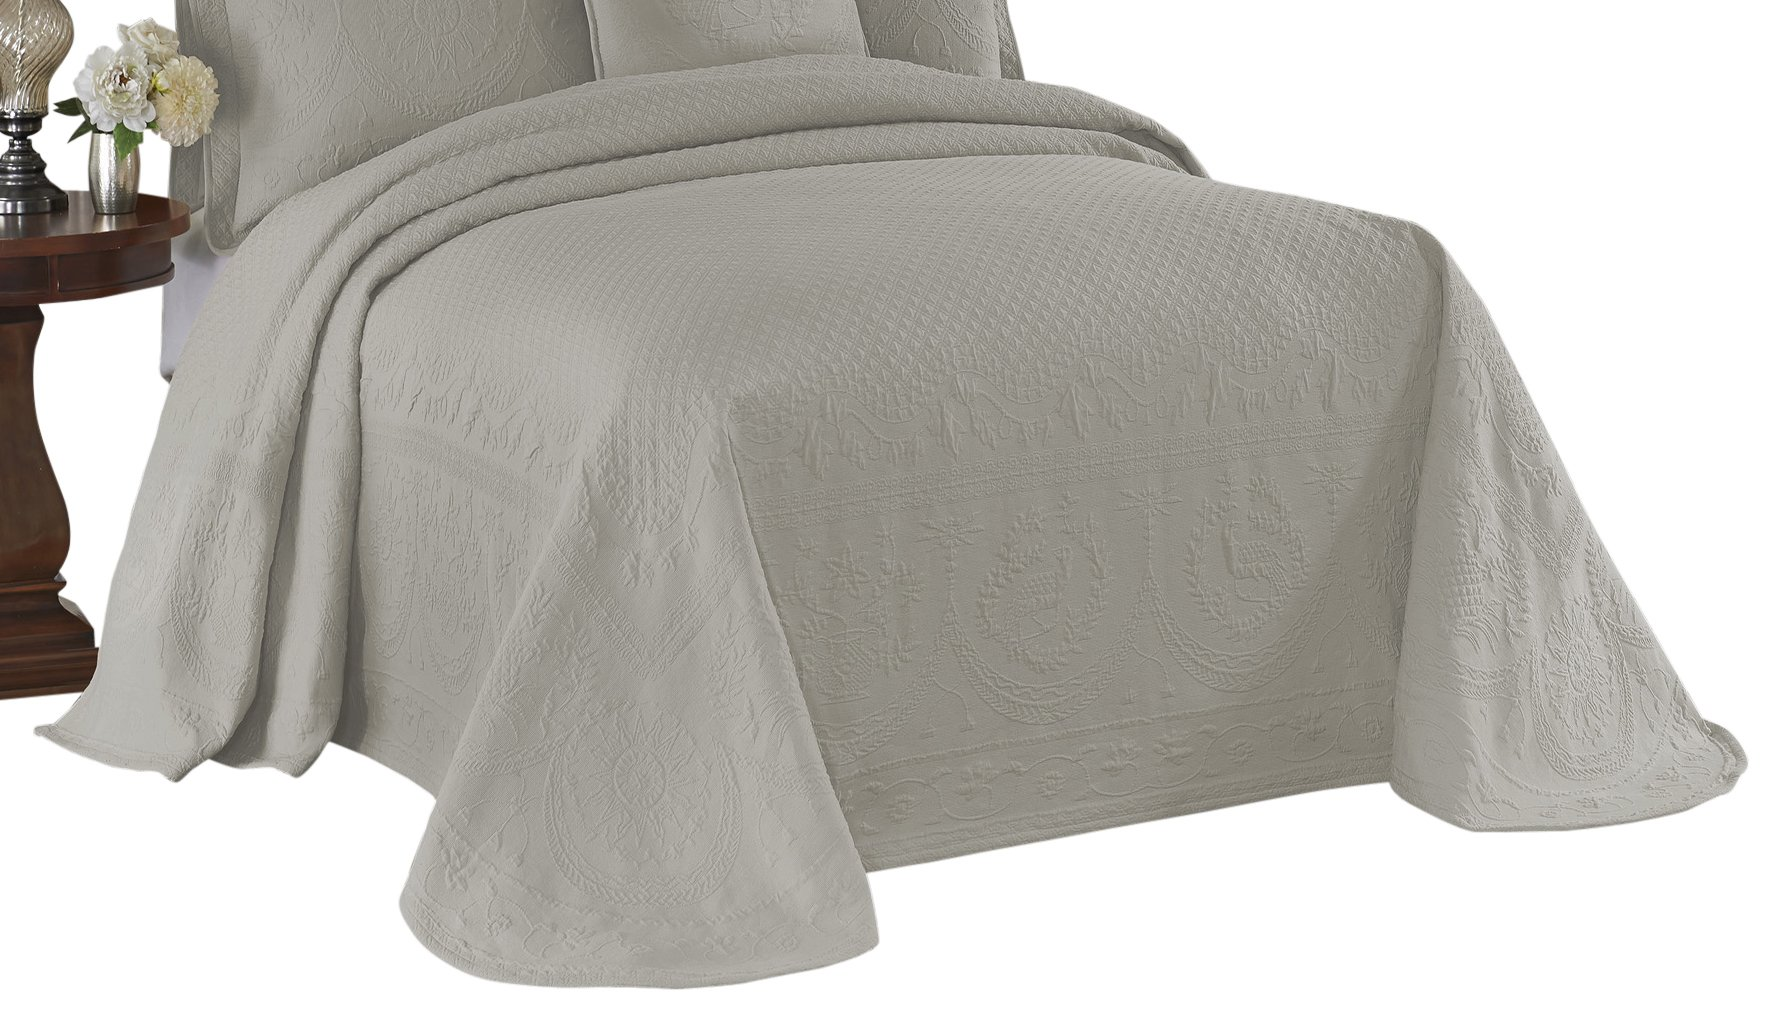 Historic Charleston 13989BEDDKNGGRE King Charles 120-Inch by 114-Inch Matelasse King Bedspread, Grey